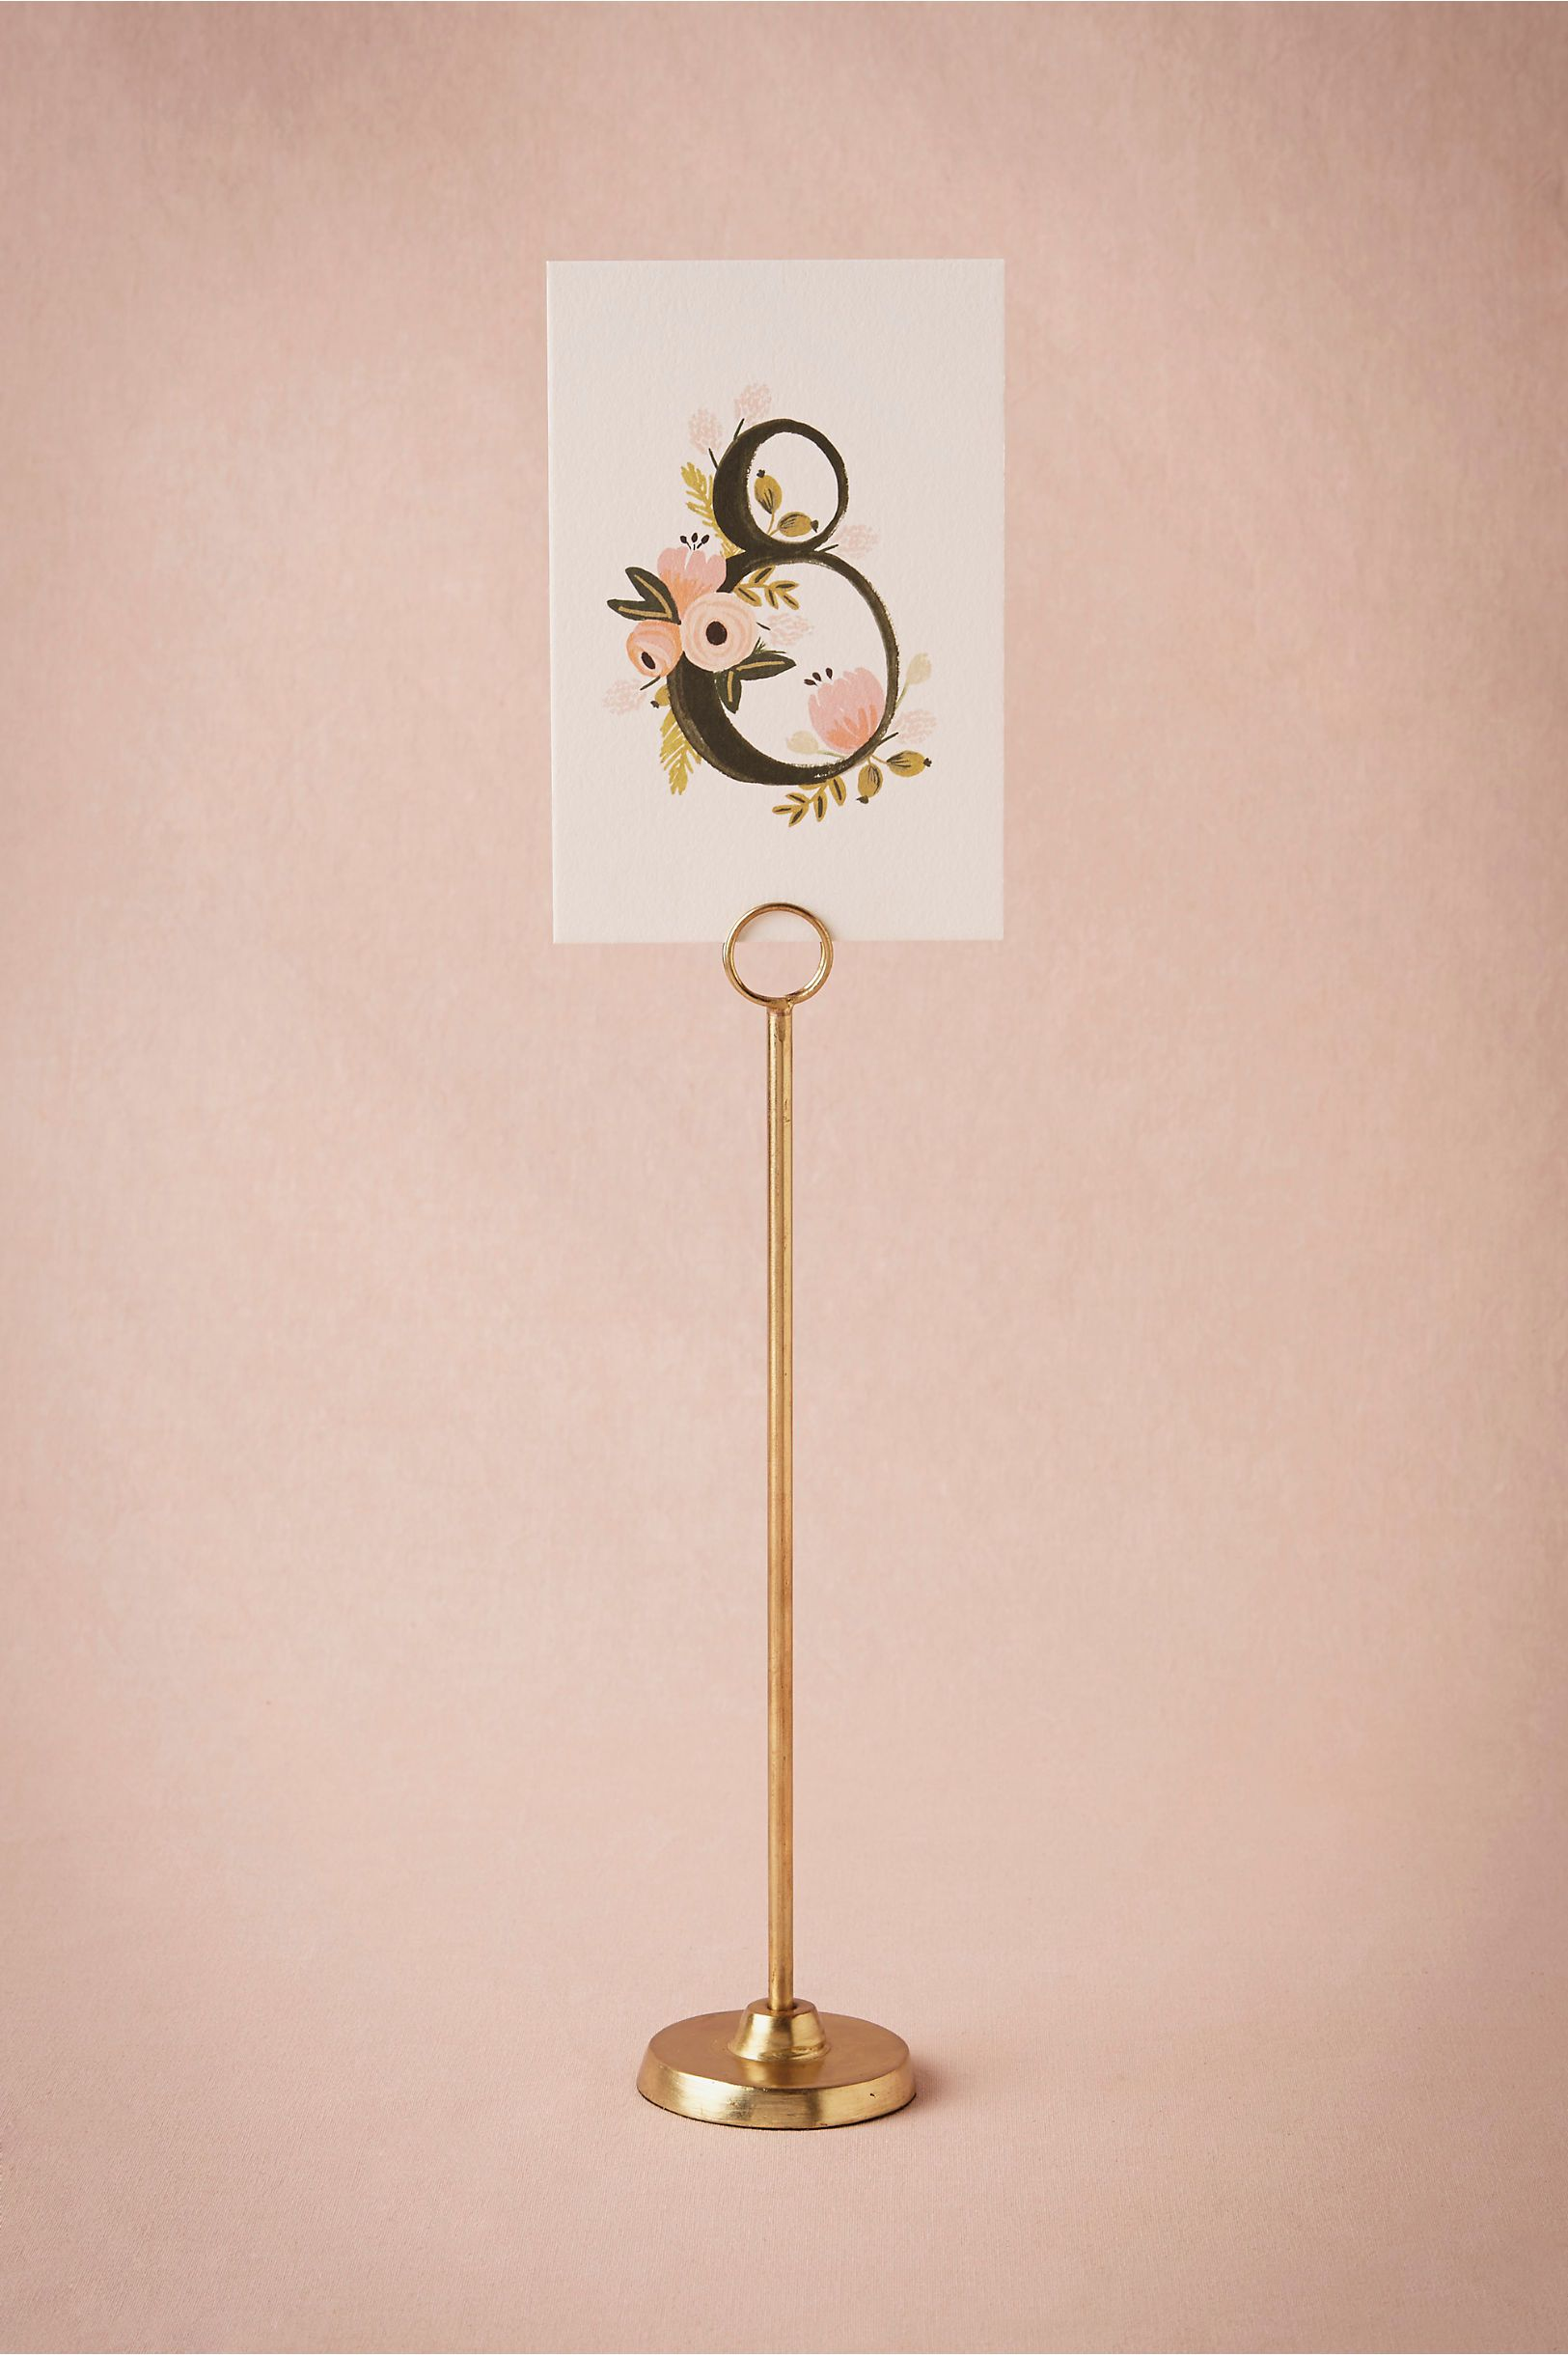 Charming Golden Spindle Cardholder In Décor Table Signage At BHLDN